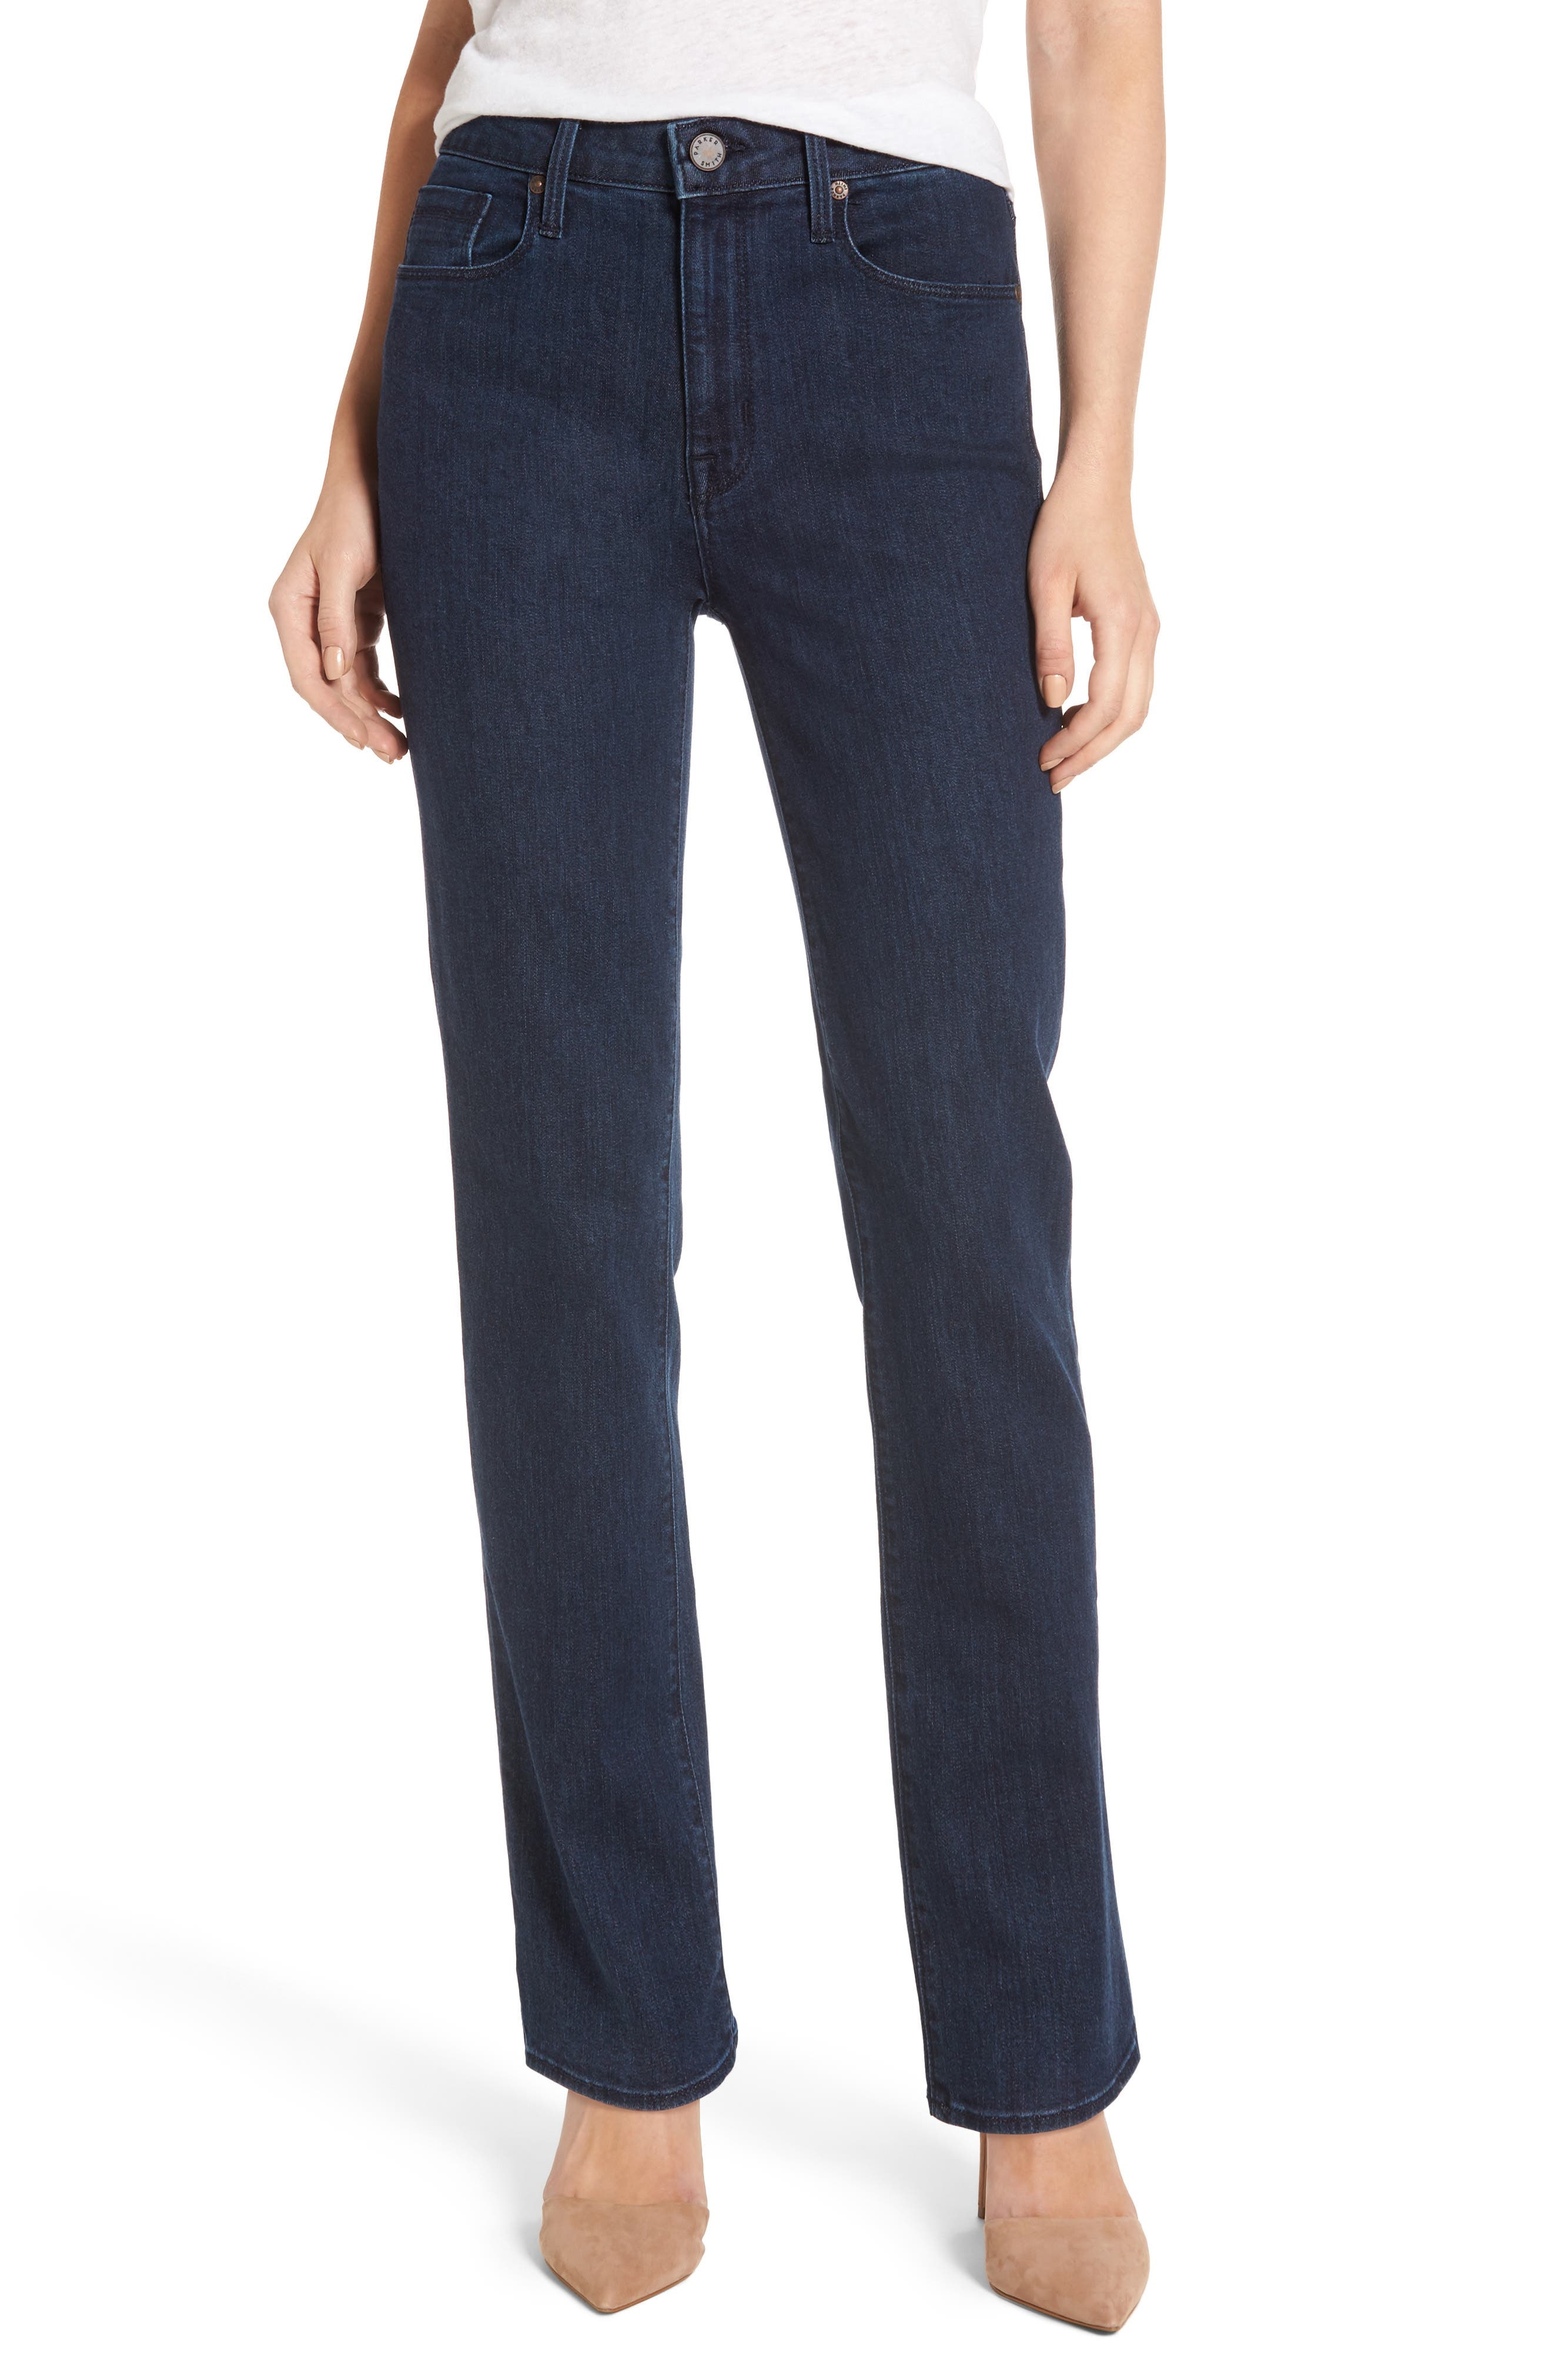 Bombshell Runaround Straight Leg Jeans,                         Main,                         color, 405